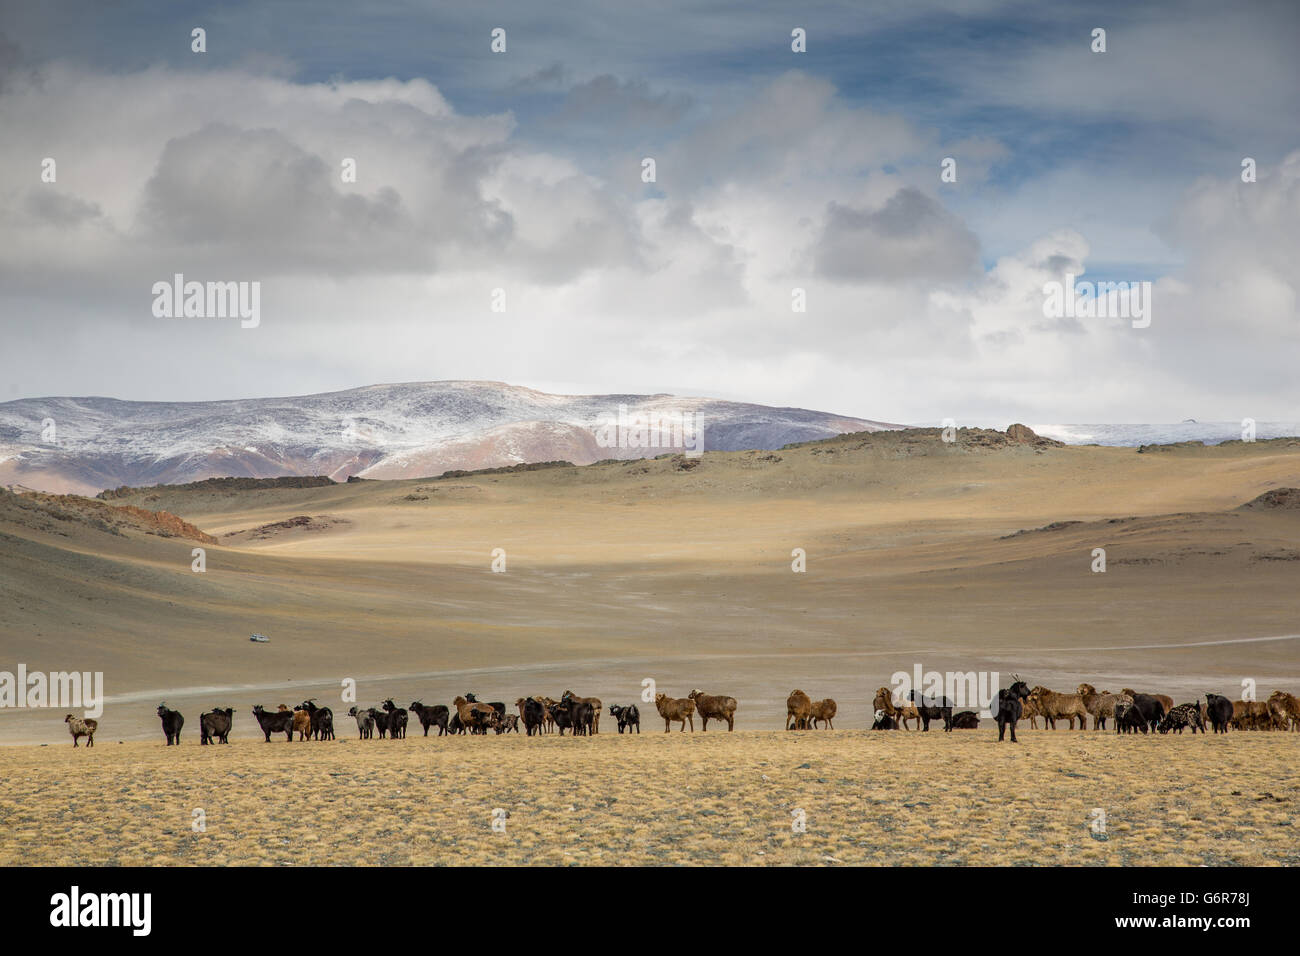 cows in the landscape of western Mongolia - Stock Image